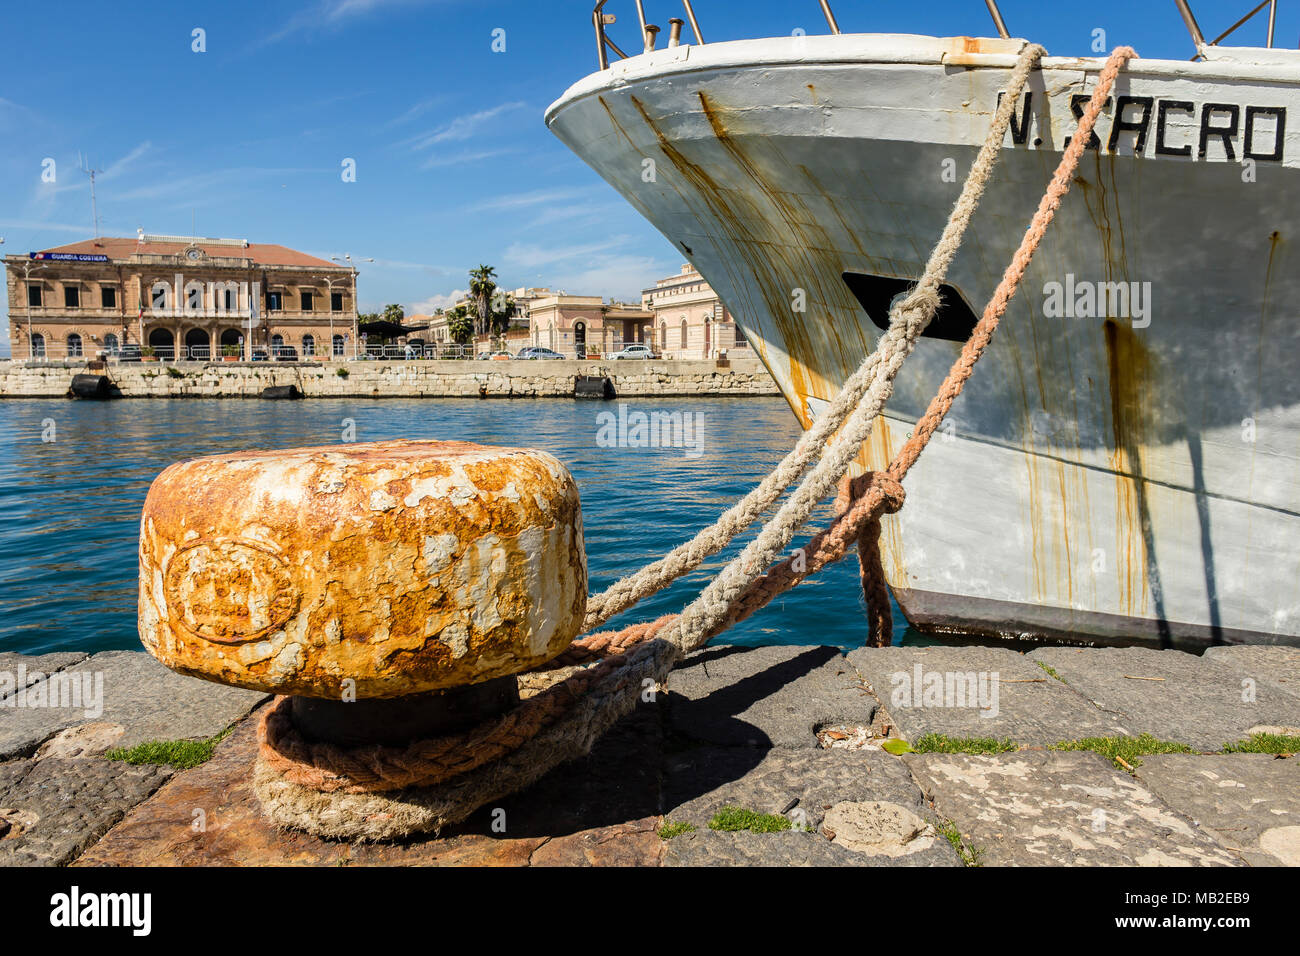 Quay of the port of Siracusa in Ortigia, SIcily, Italy. - Stock Image